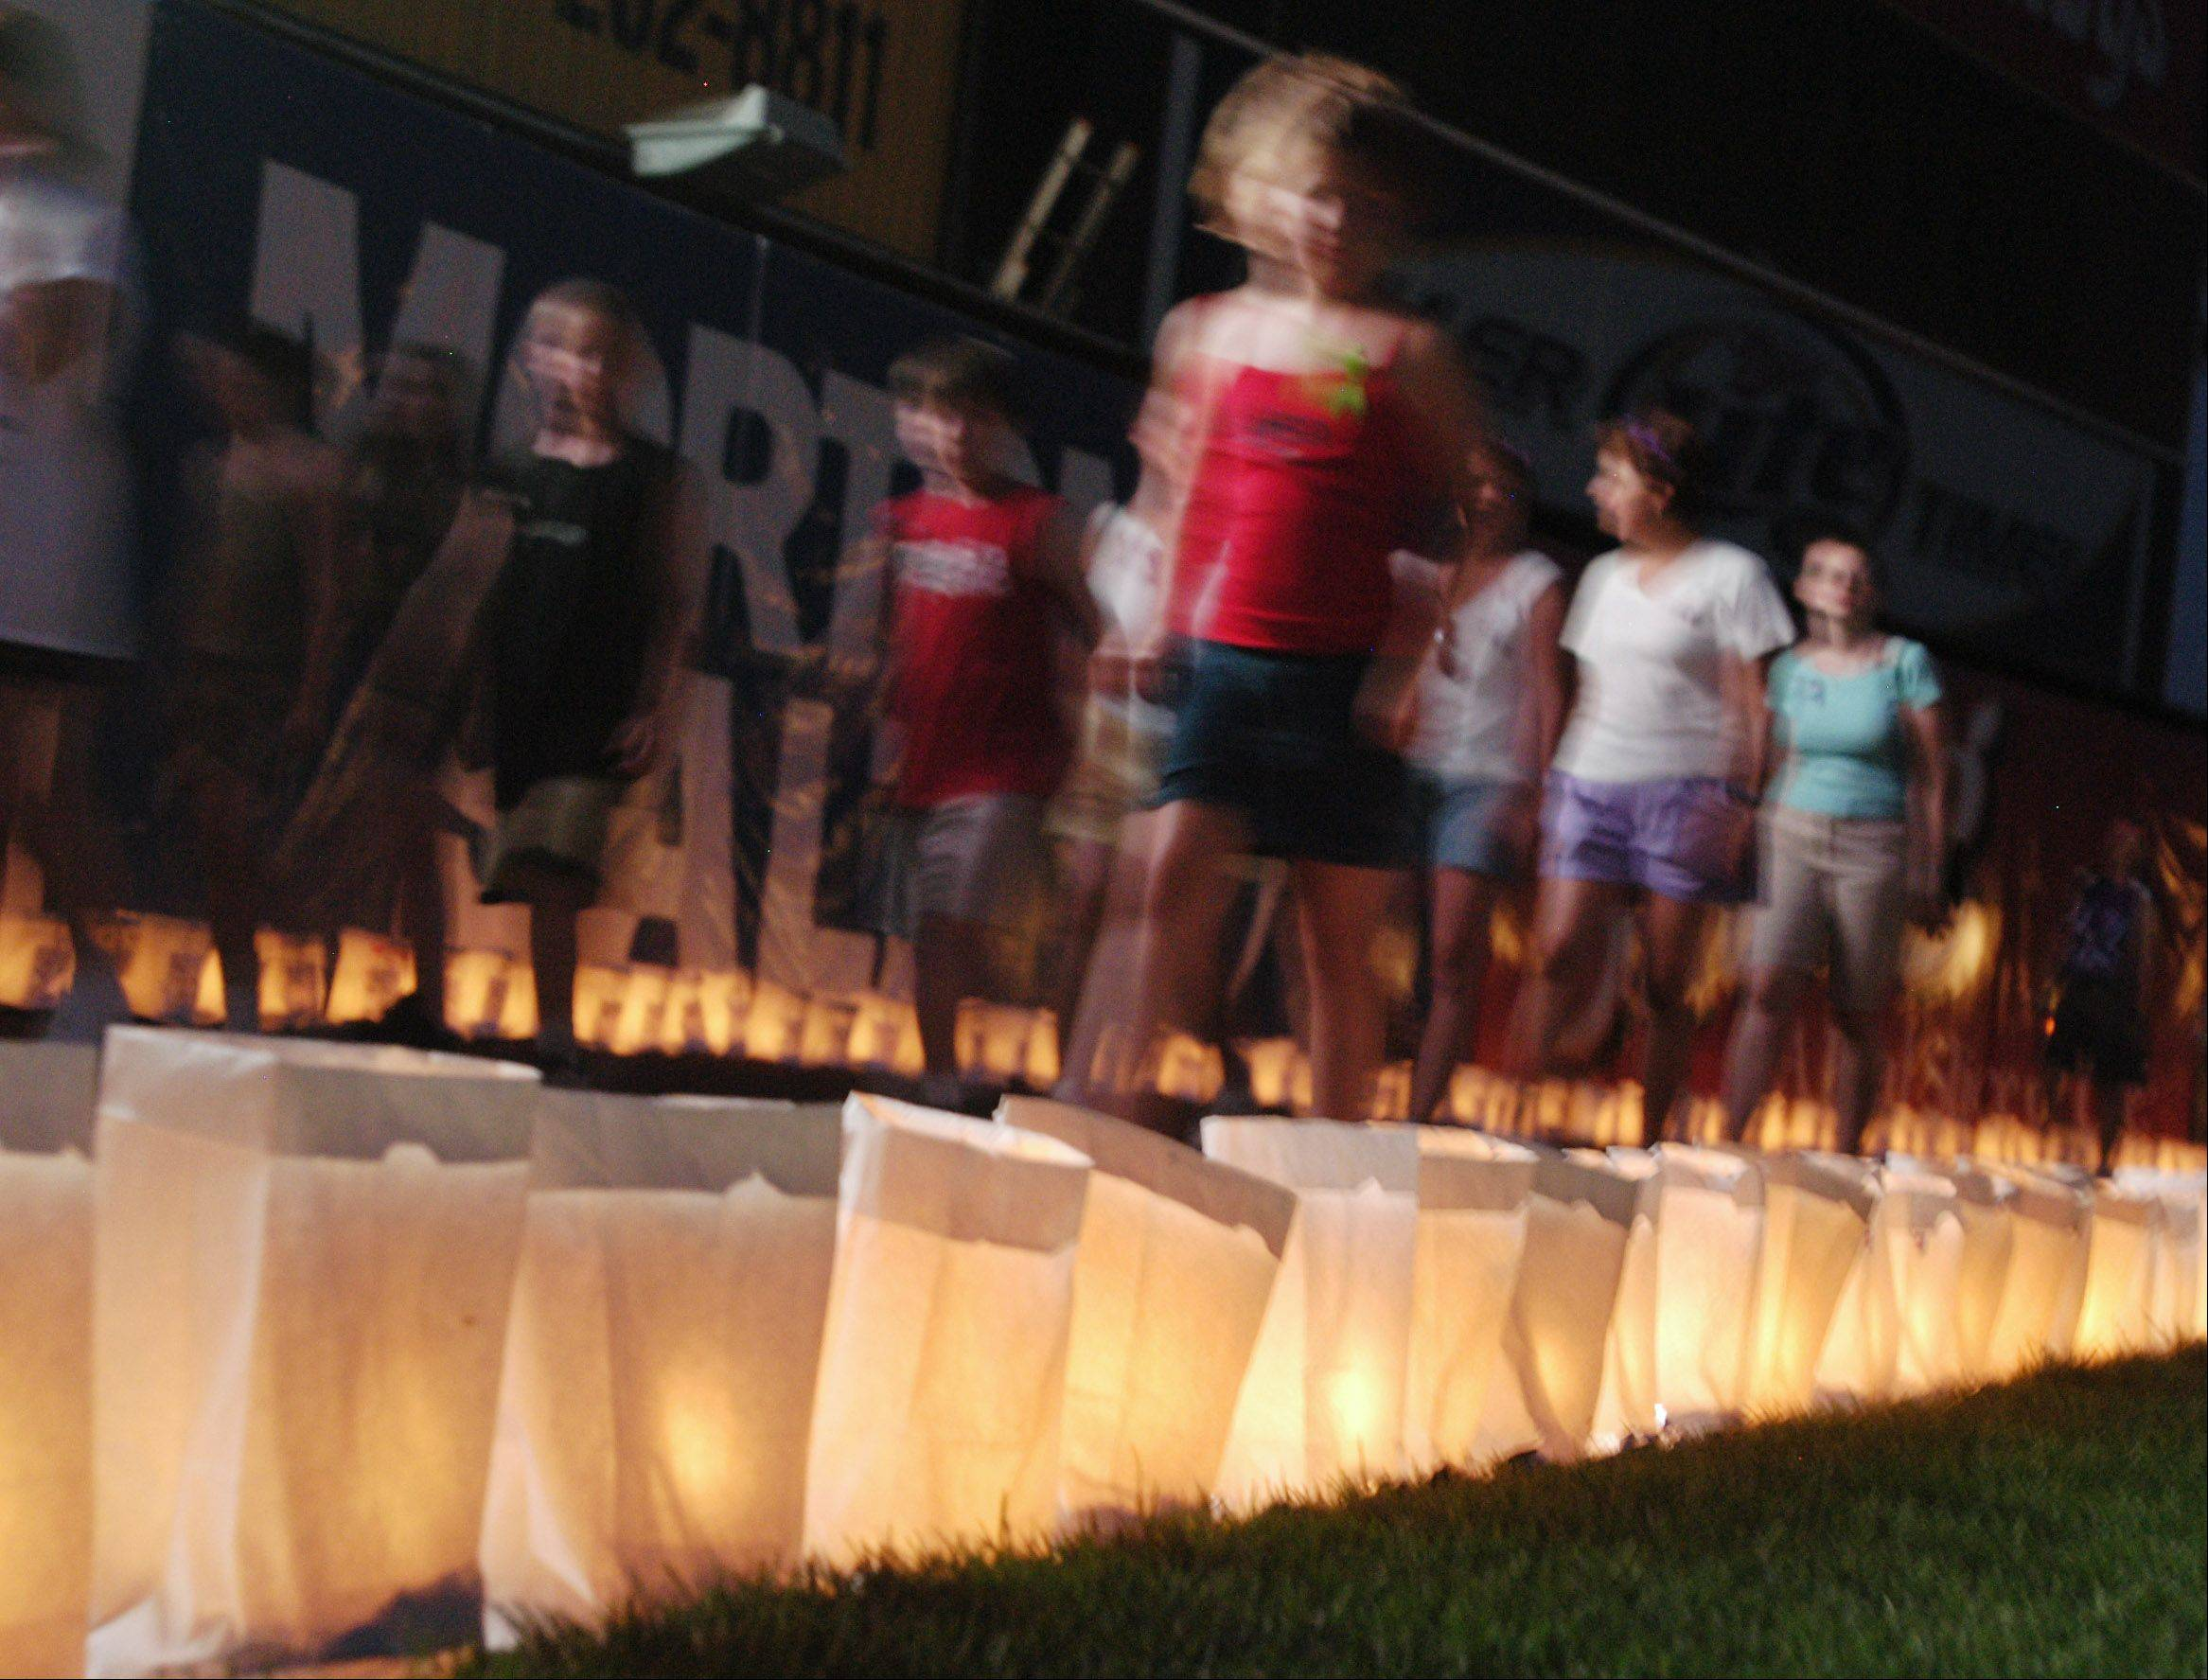 Luminaria line the tracks at Relay For Life events to honor those touched by cancer and to remember those who've died of the disease. Often, a memorial lap is walked in silence.